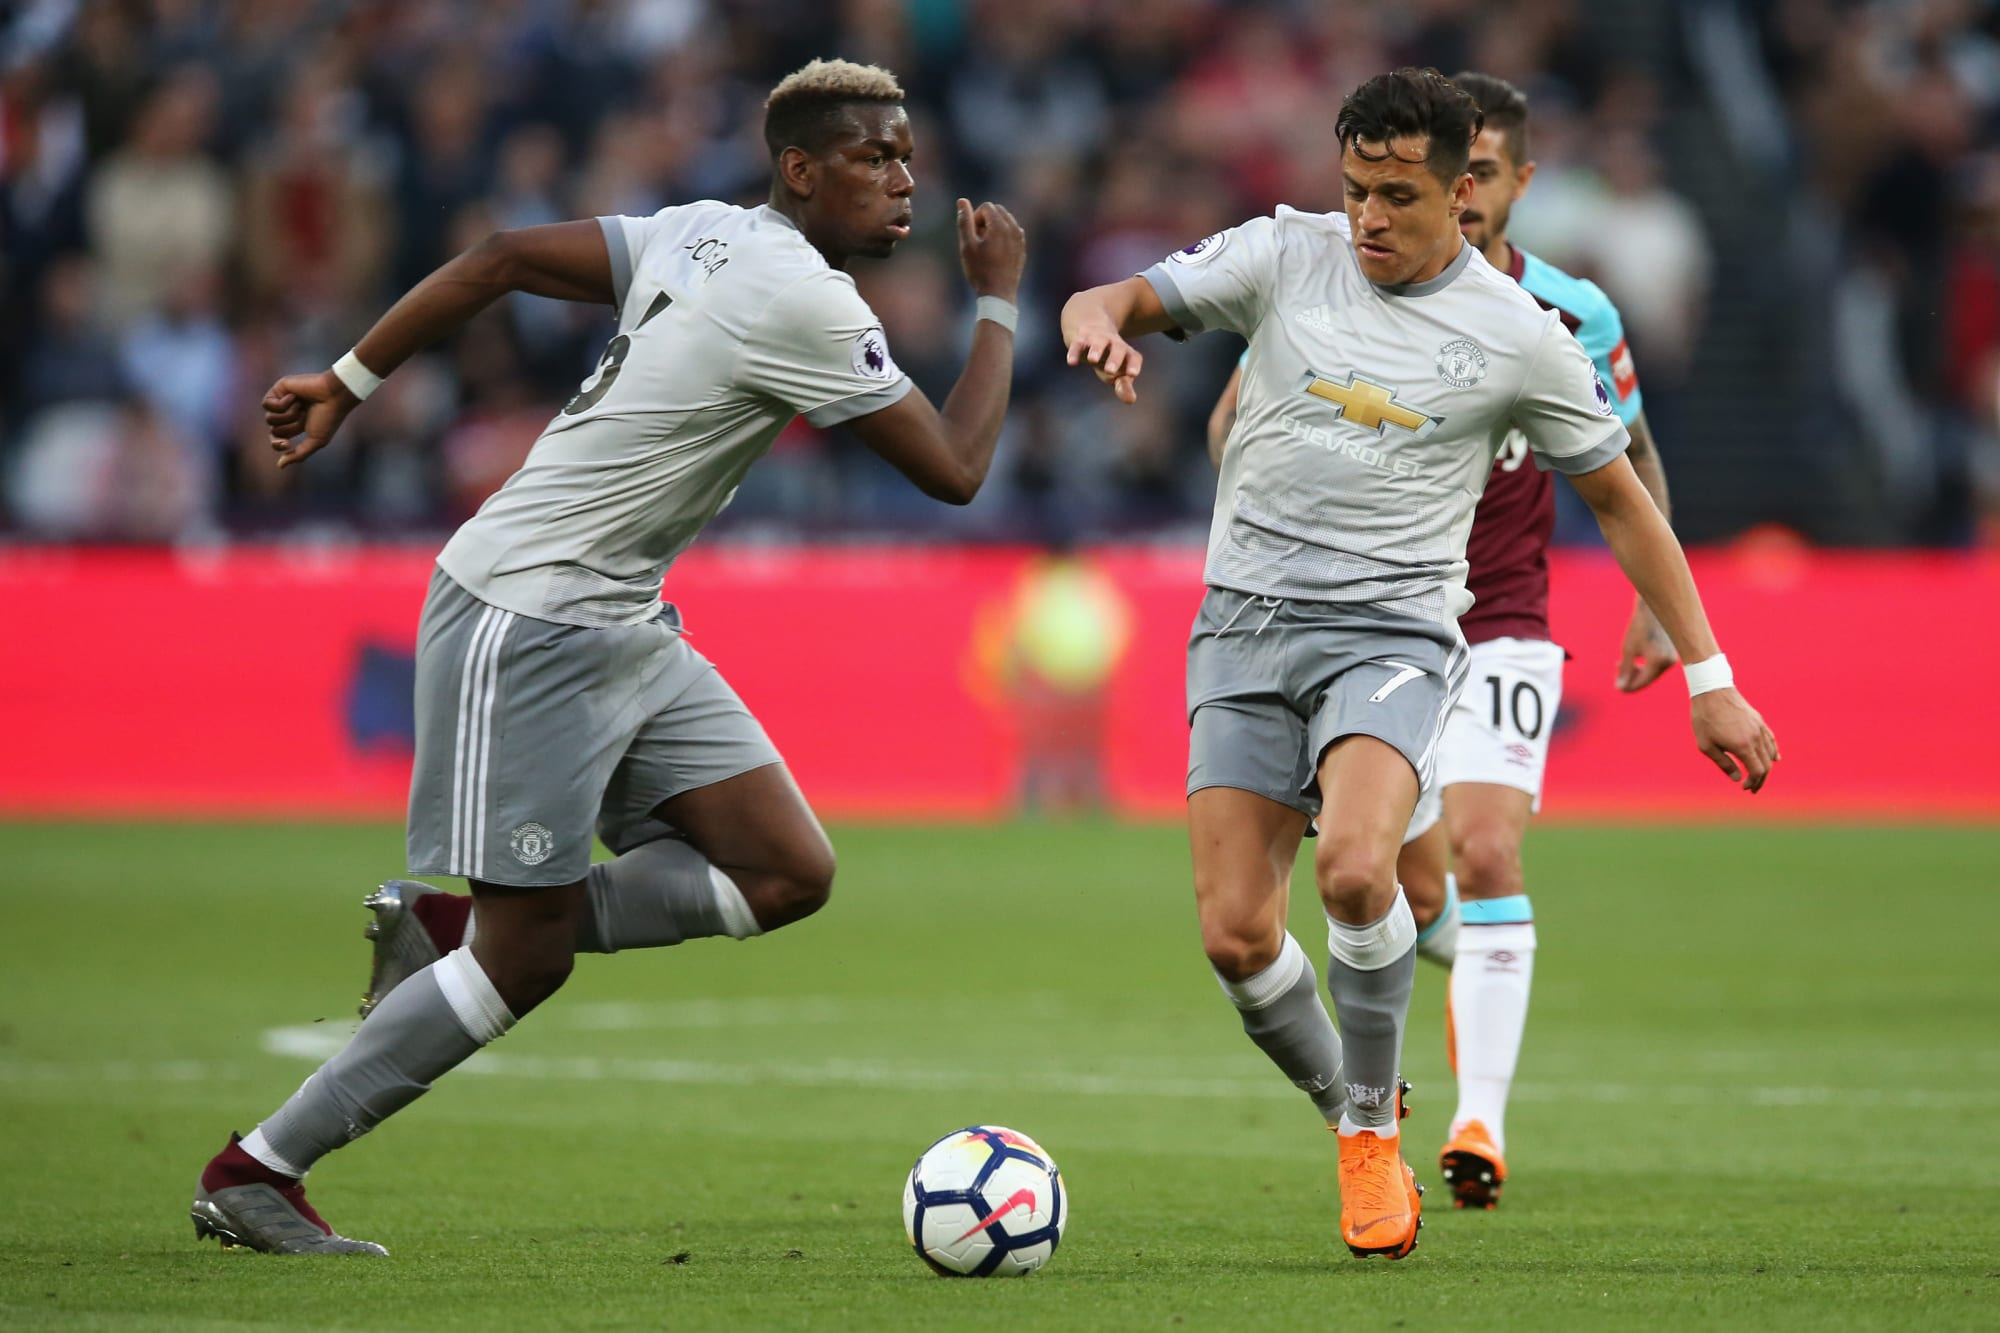 Manchester United could still sell flop in the summer window